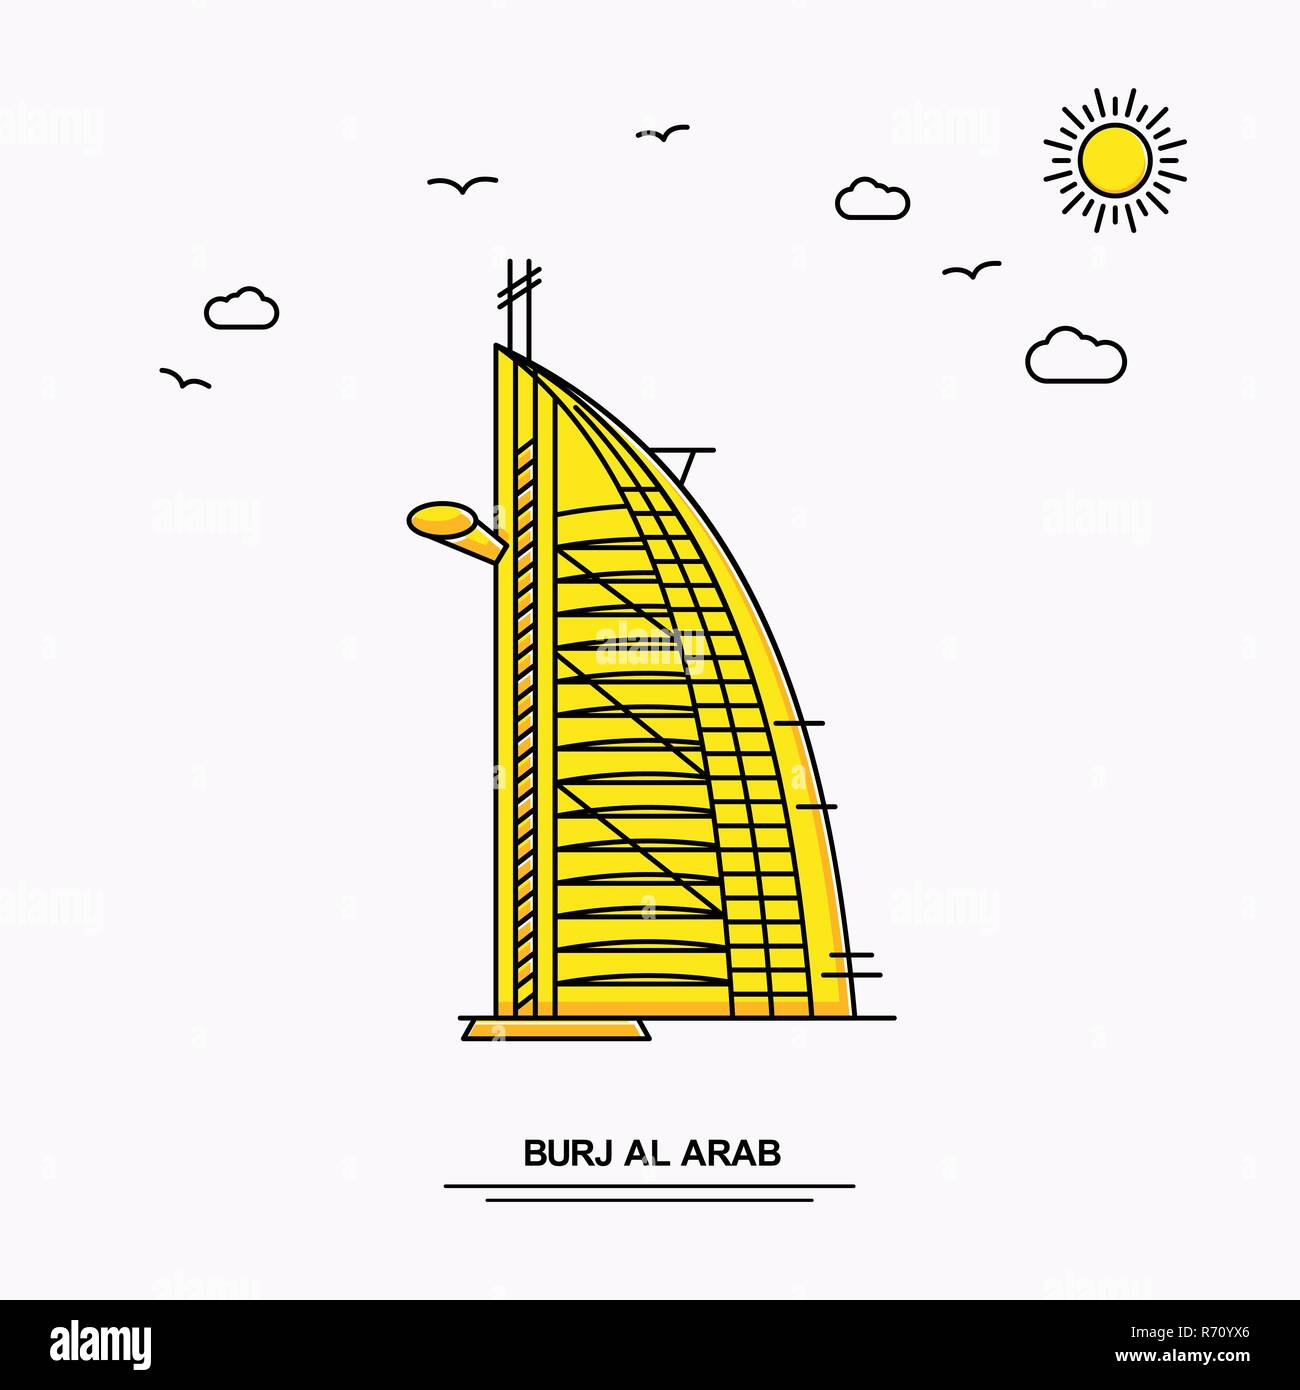 BURJ AL ARAB Monument Poster Template. World Travel Yellow illustration Background in Line Style with beauture nature Scene Stock Vector